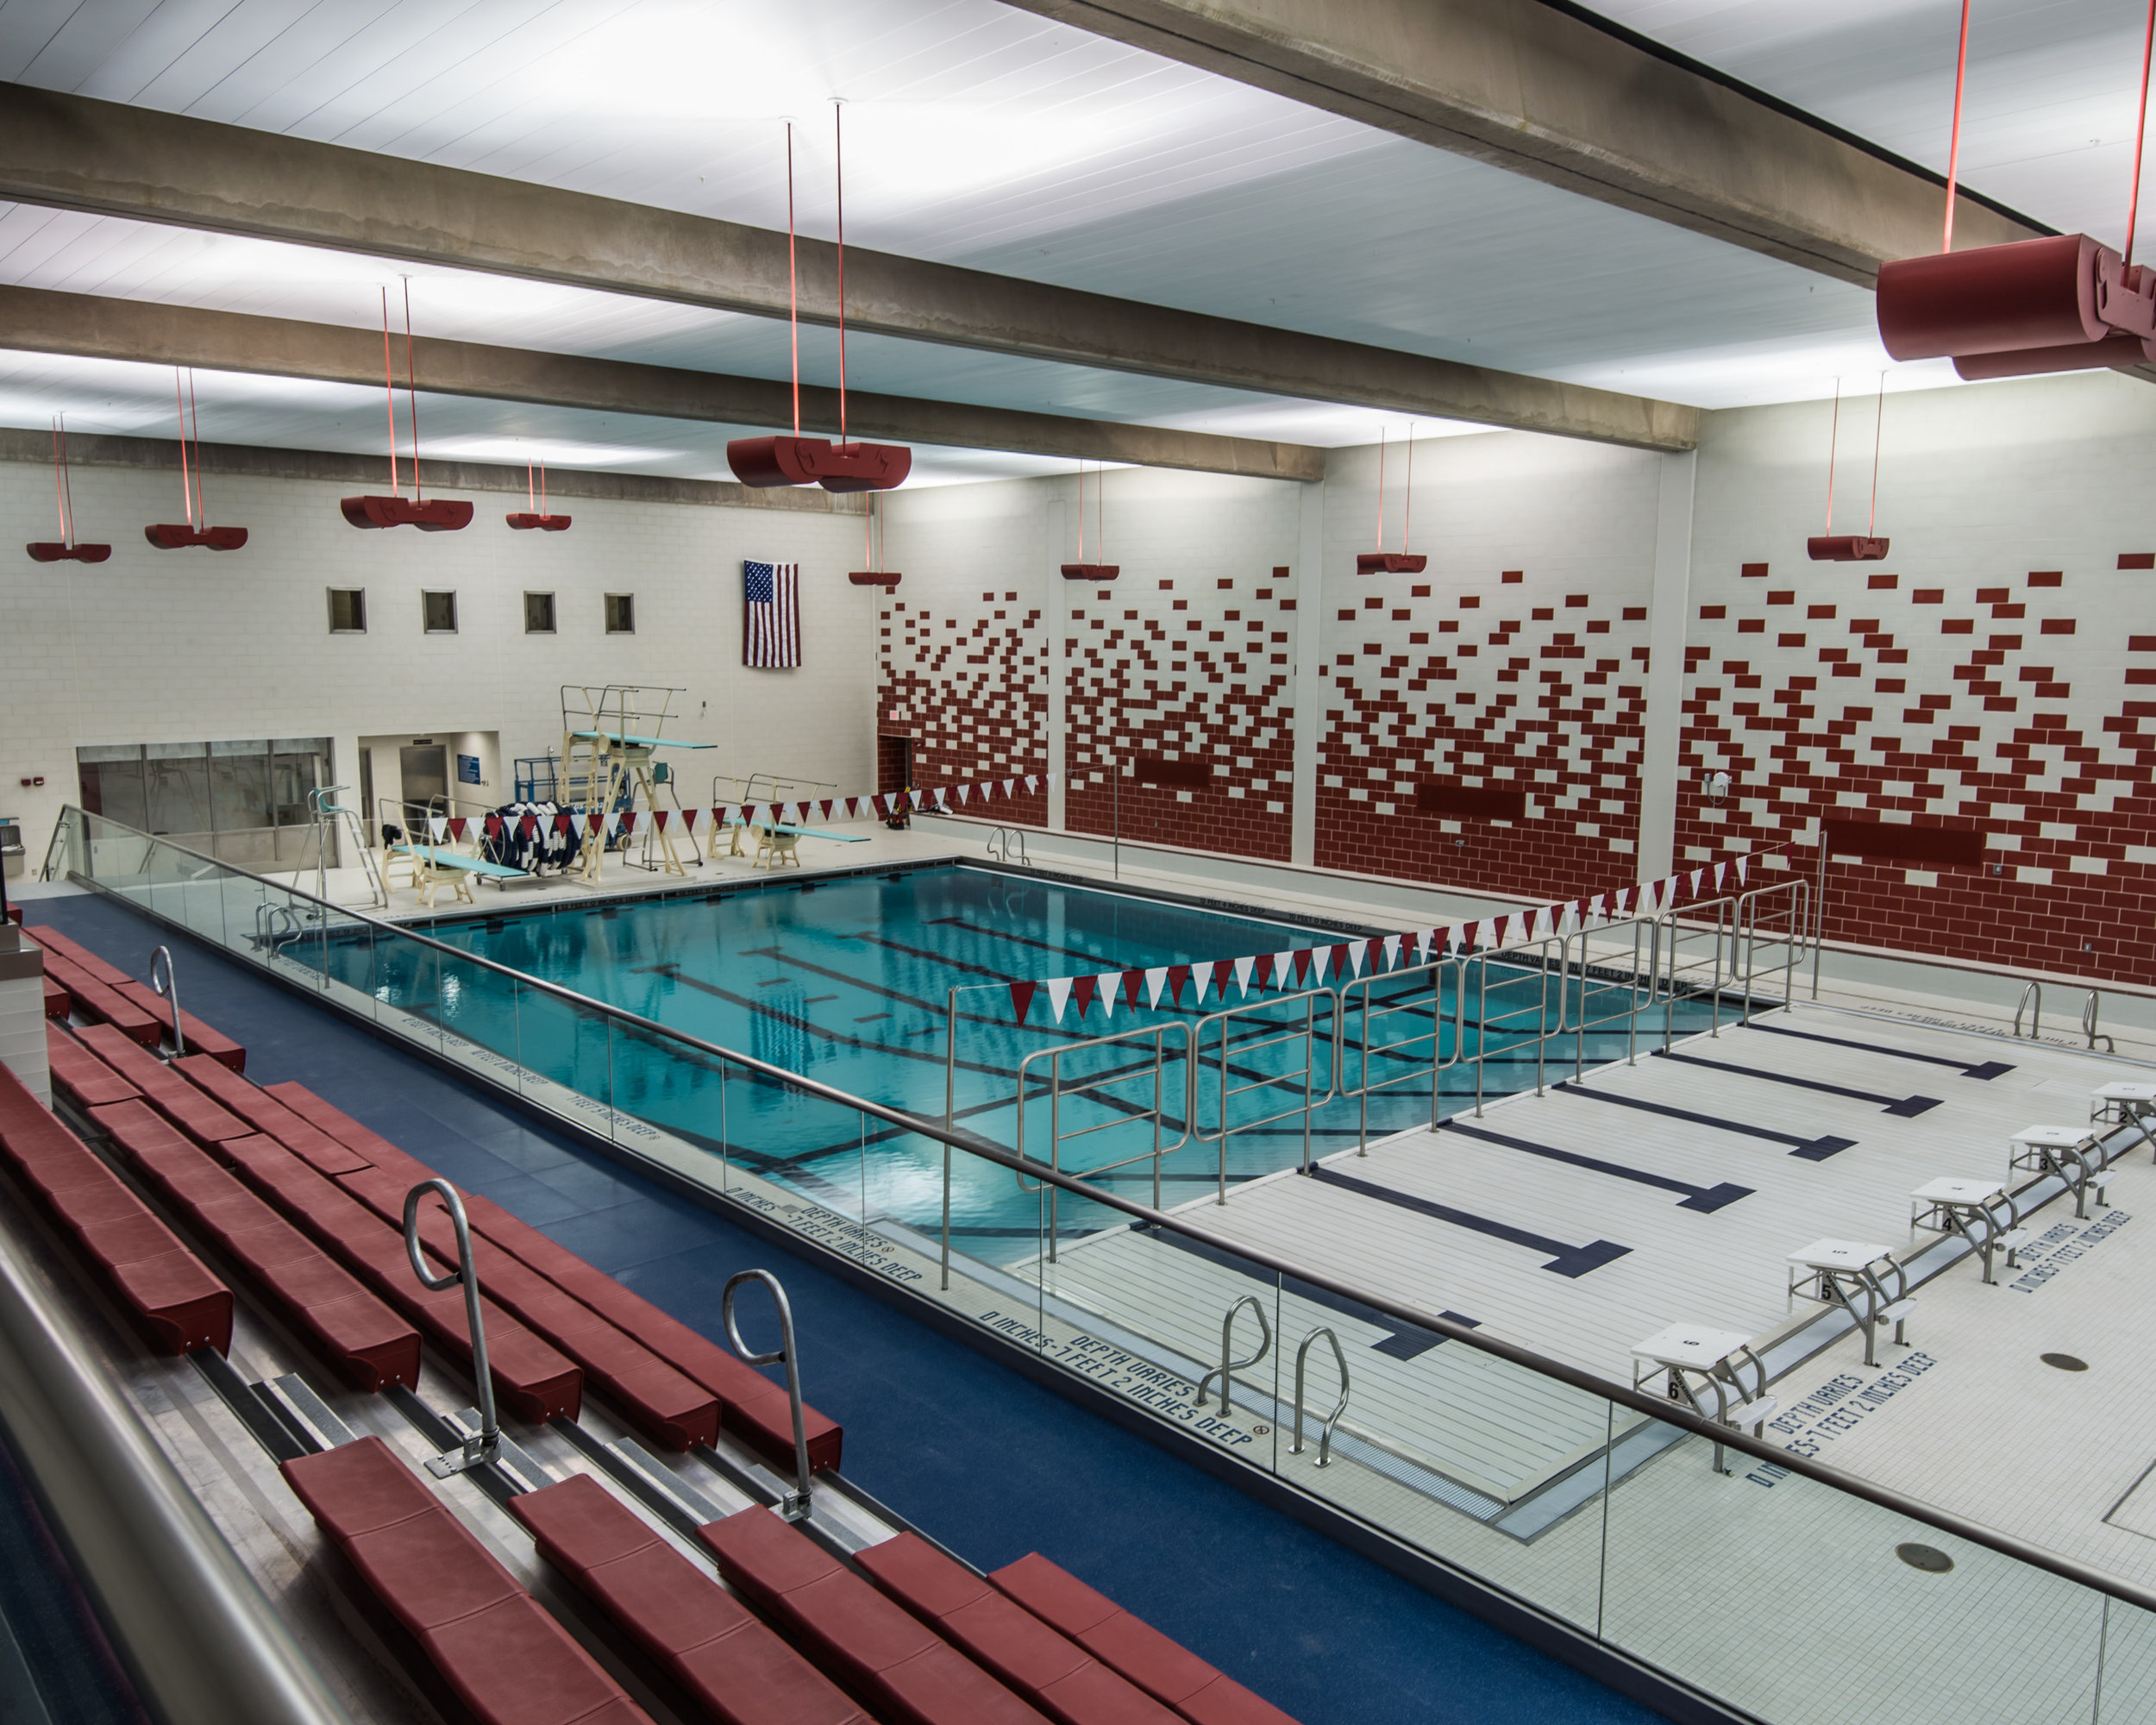 Substantial Completion has been reached at the Stony Brook University Aquatic Center. Once all inspections and testing is complete the students and community will be able to enjoy this state of the art facility and NCAA Division I competition will be able to take place. Click on the image for more information about this project.